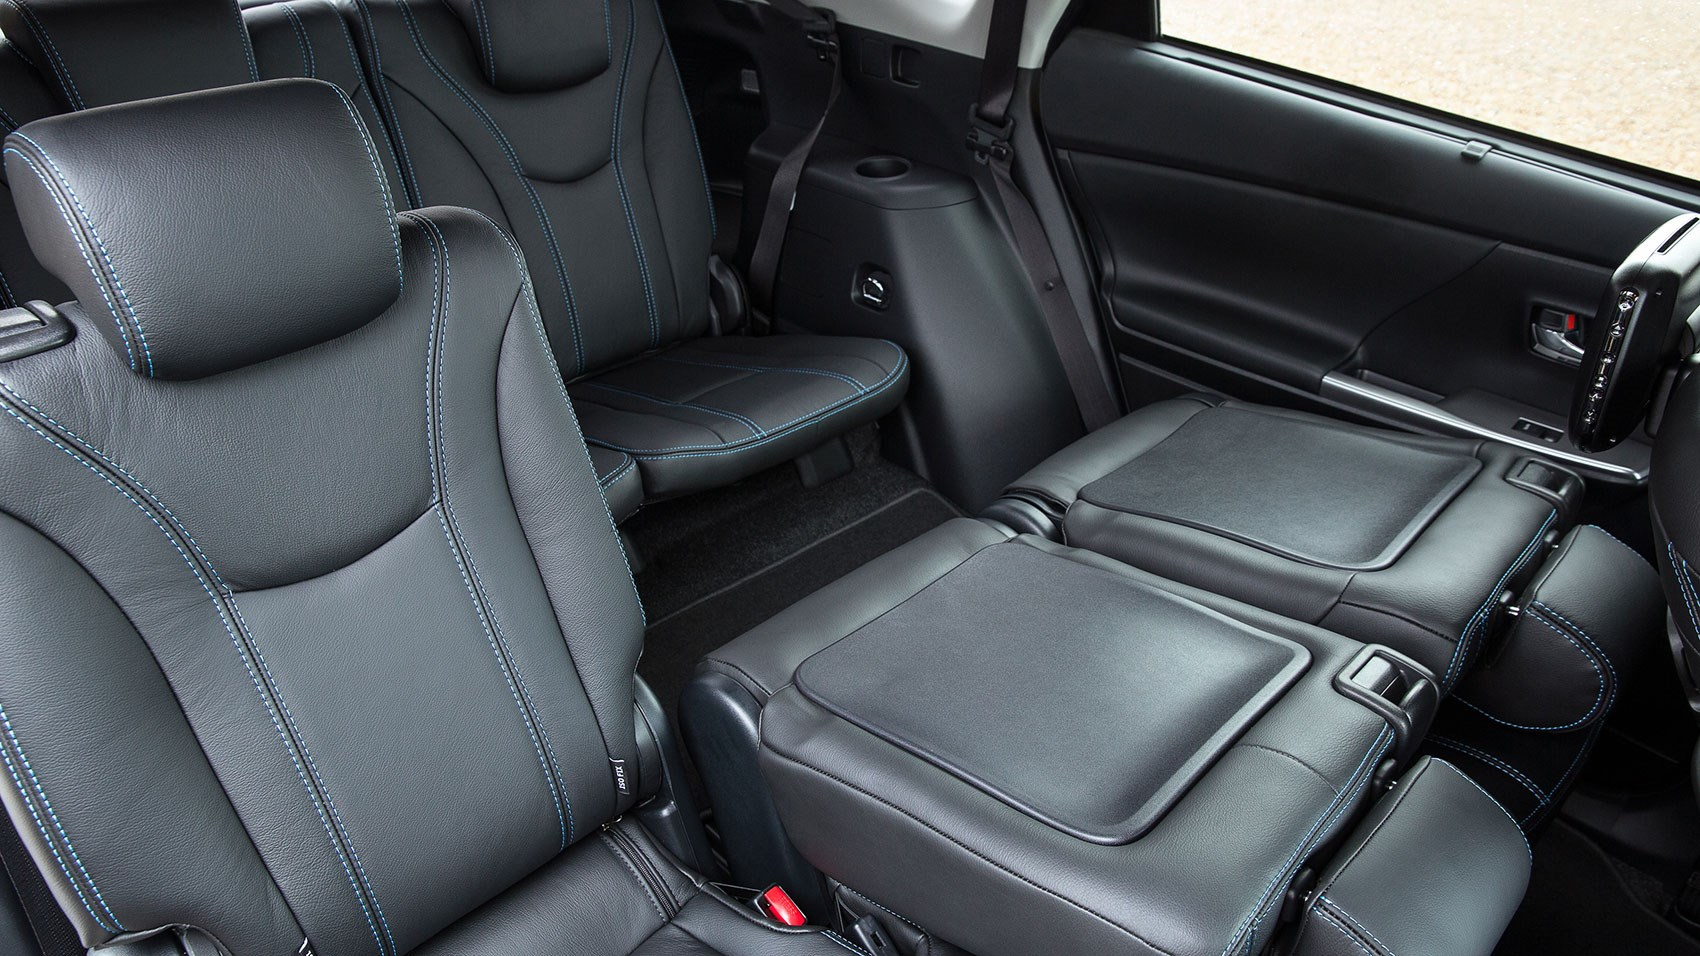 seven seats as standard in the toyota prius plus